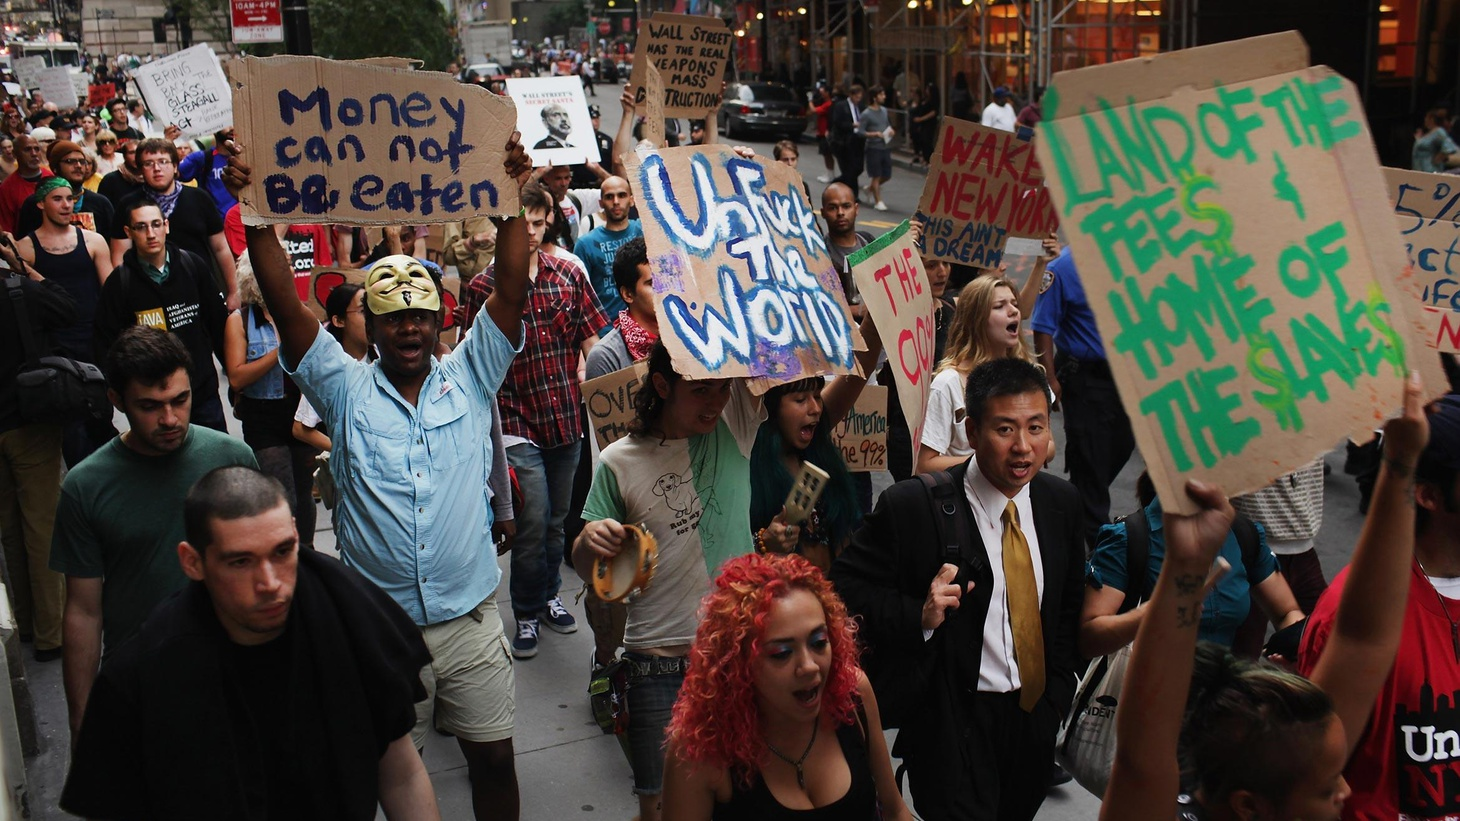 Occupy Wall Street is only two weeks old and 200 strong, but it's trying to use Facebook and Twitter to organize nationwide. Is it part of worldwide discontent with...